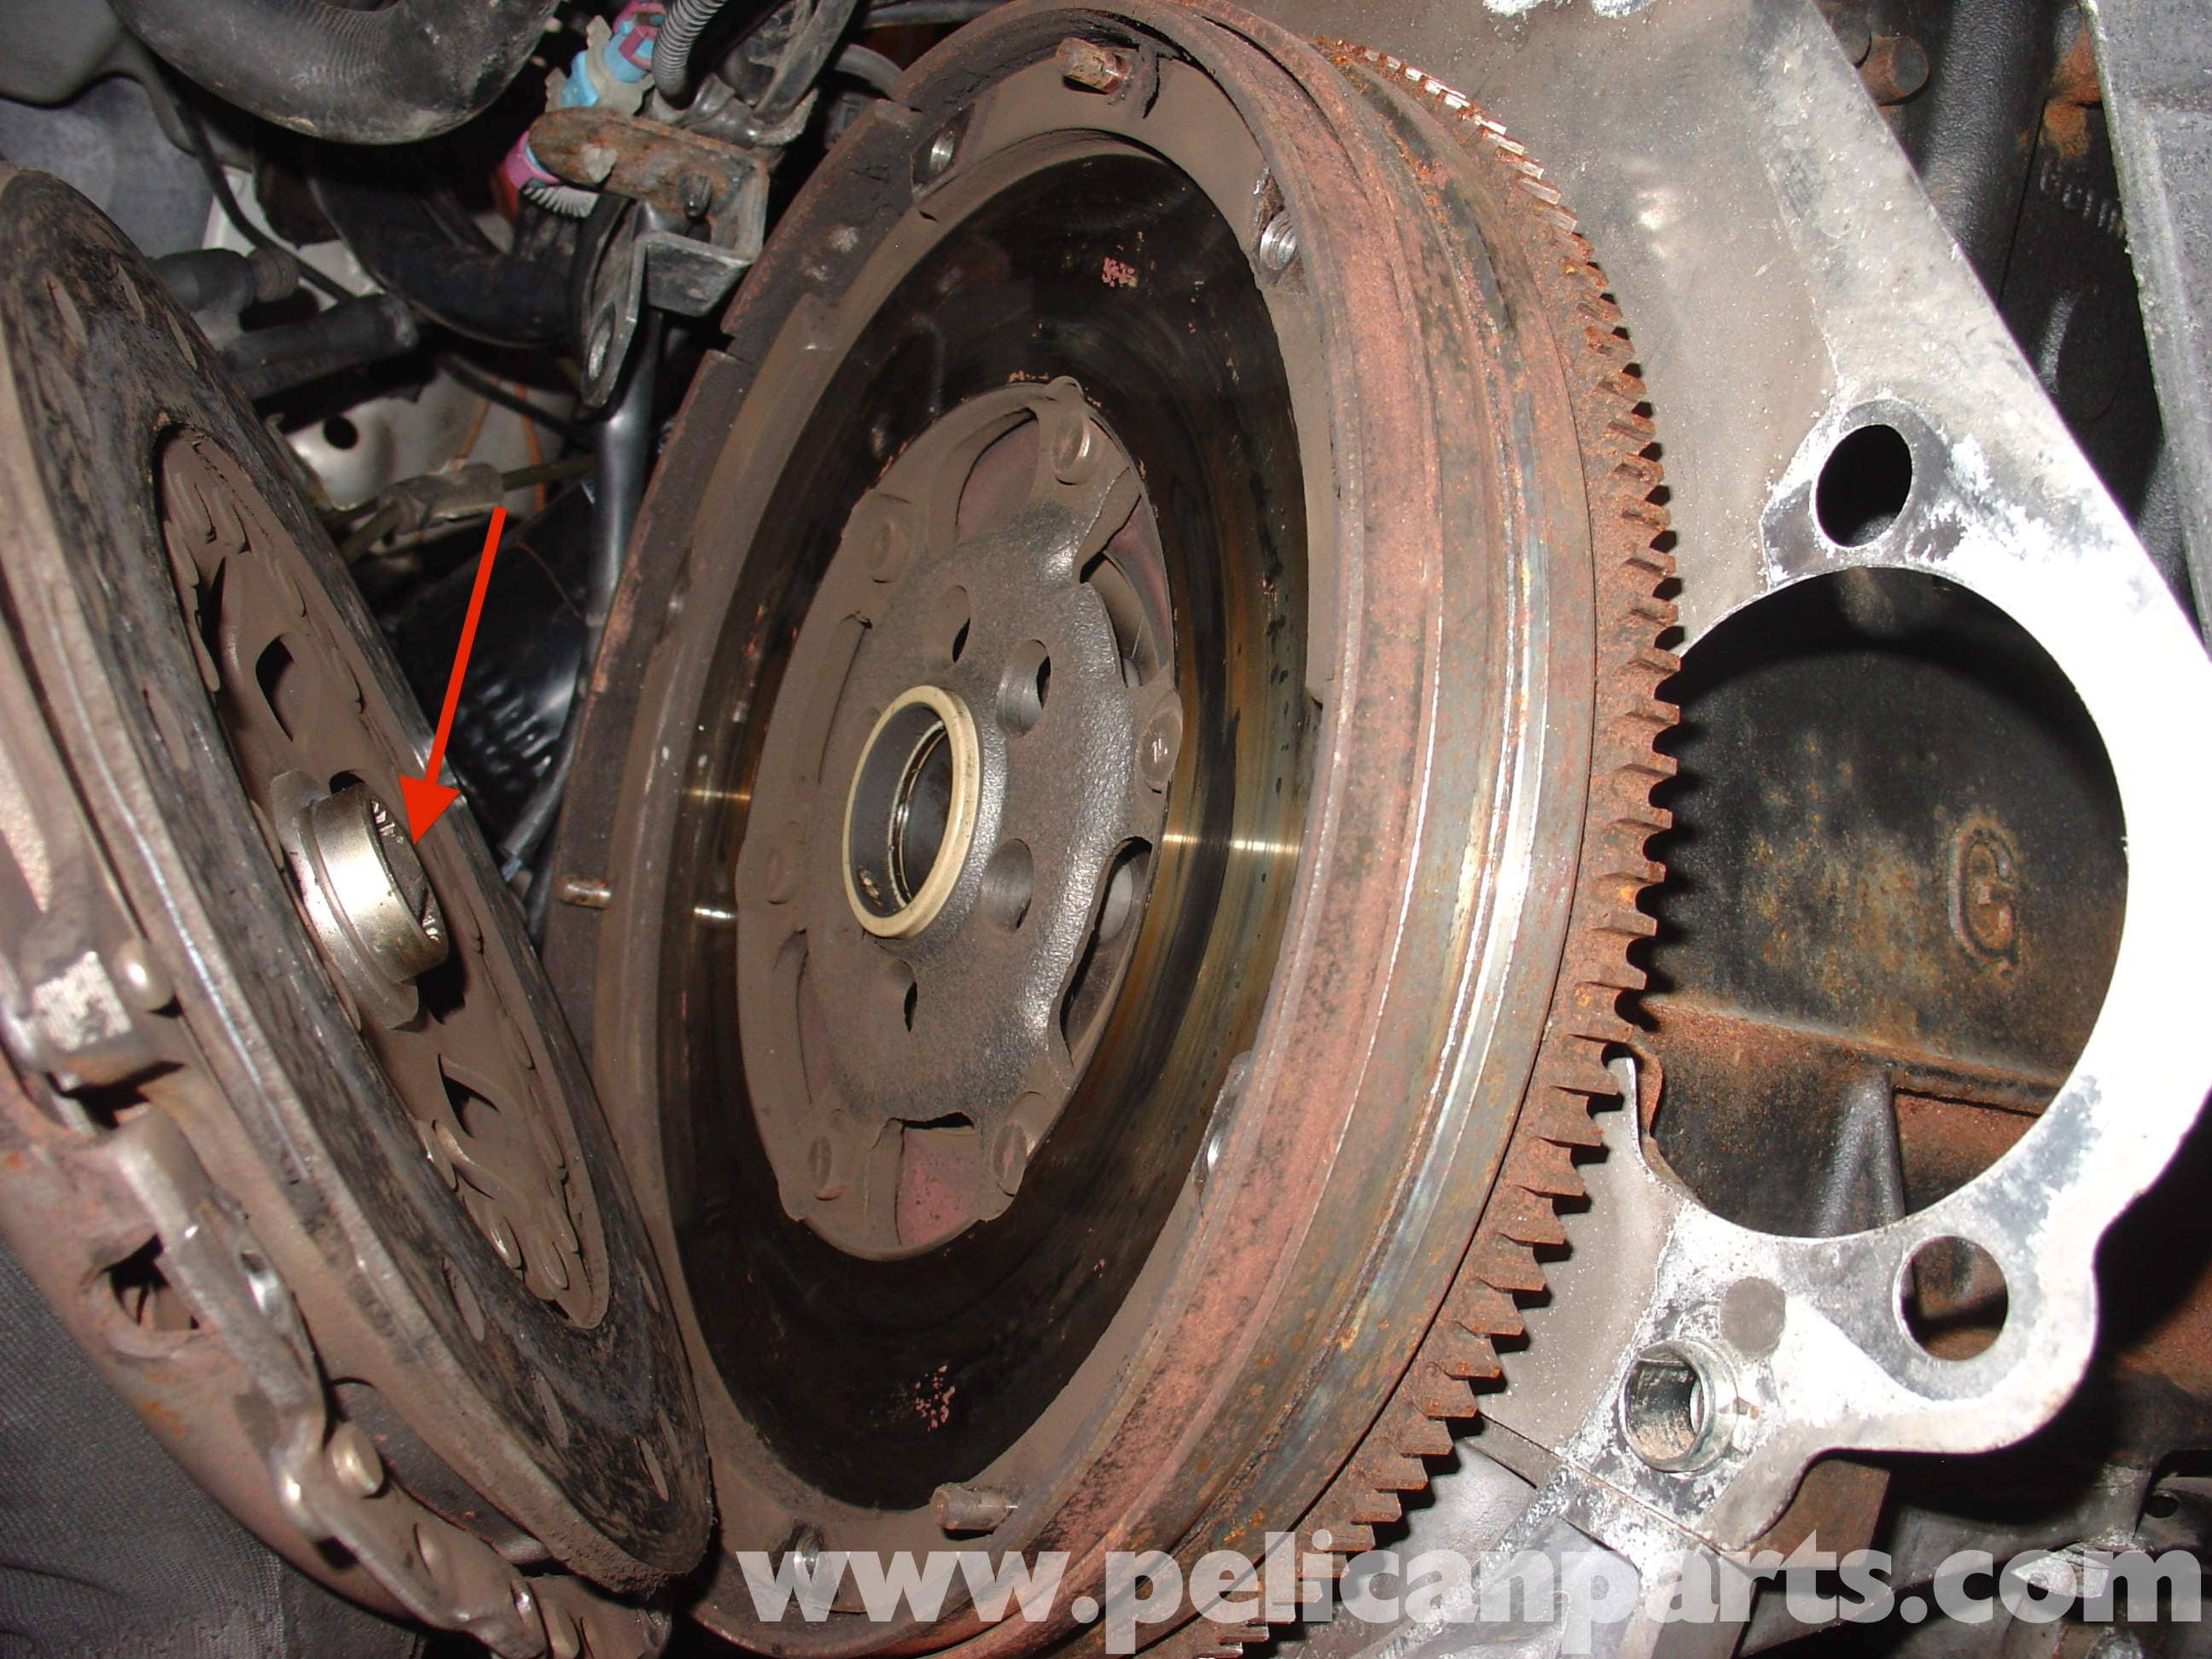 audi a4 quattro b5 clutch and release bearing replacement 1 8t 1997 rh pelicanparts com Audi A4 Quattro Audi A4 1.8L Turbo Horsepower